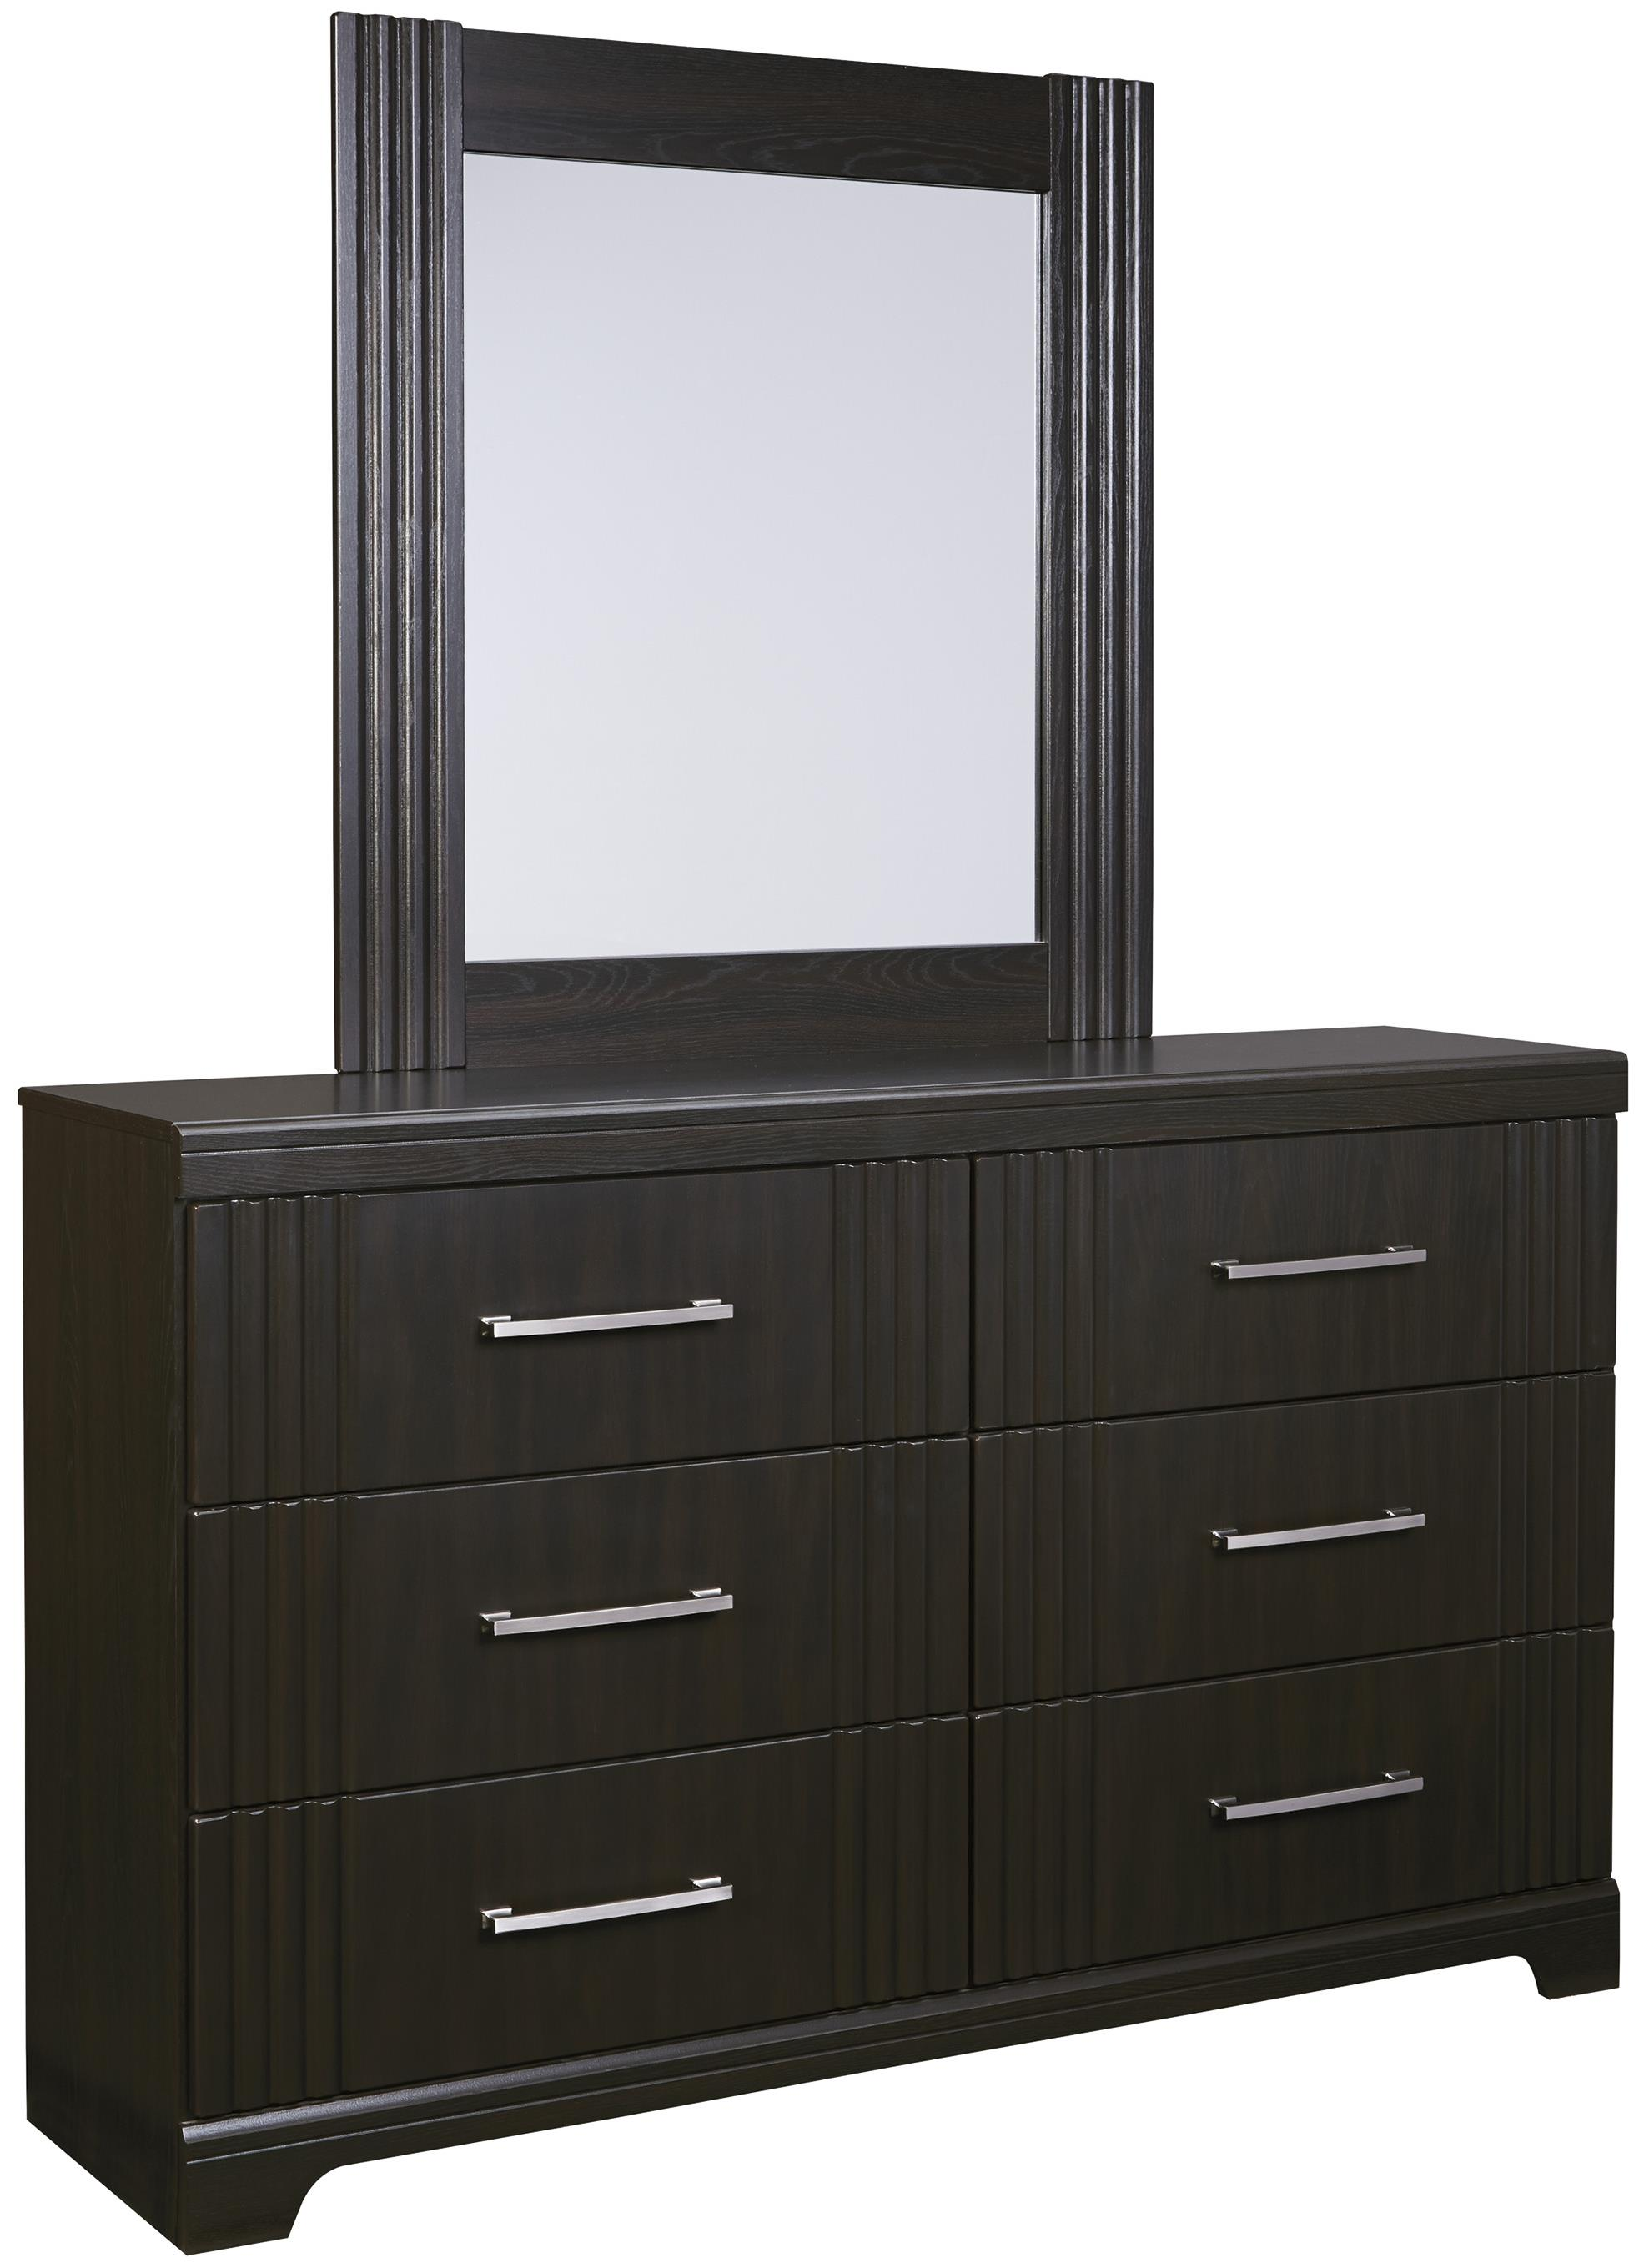 Signature Design by Ashley Tadlyn Dresser and Mirror - Item Number: B146-31+36